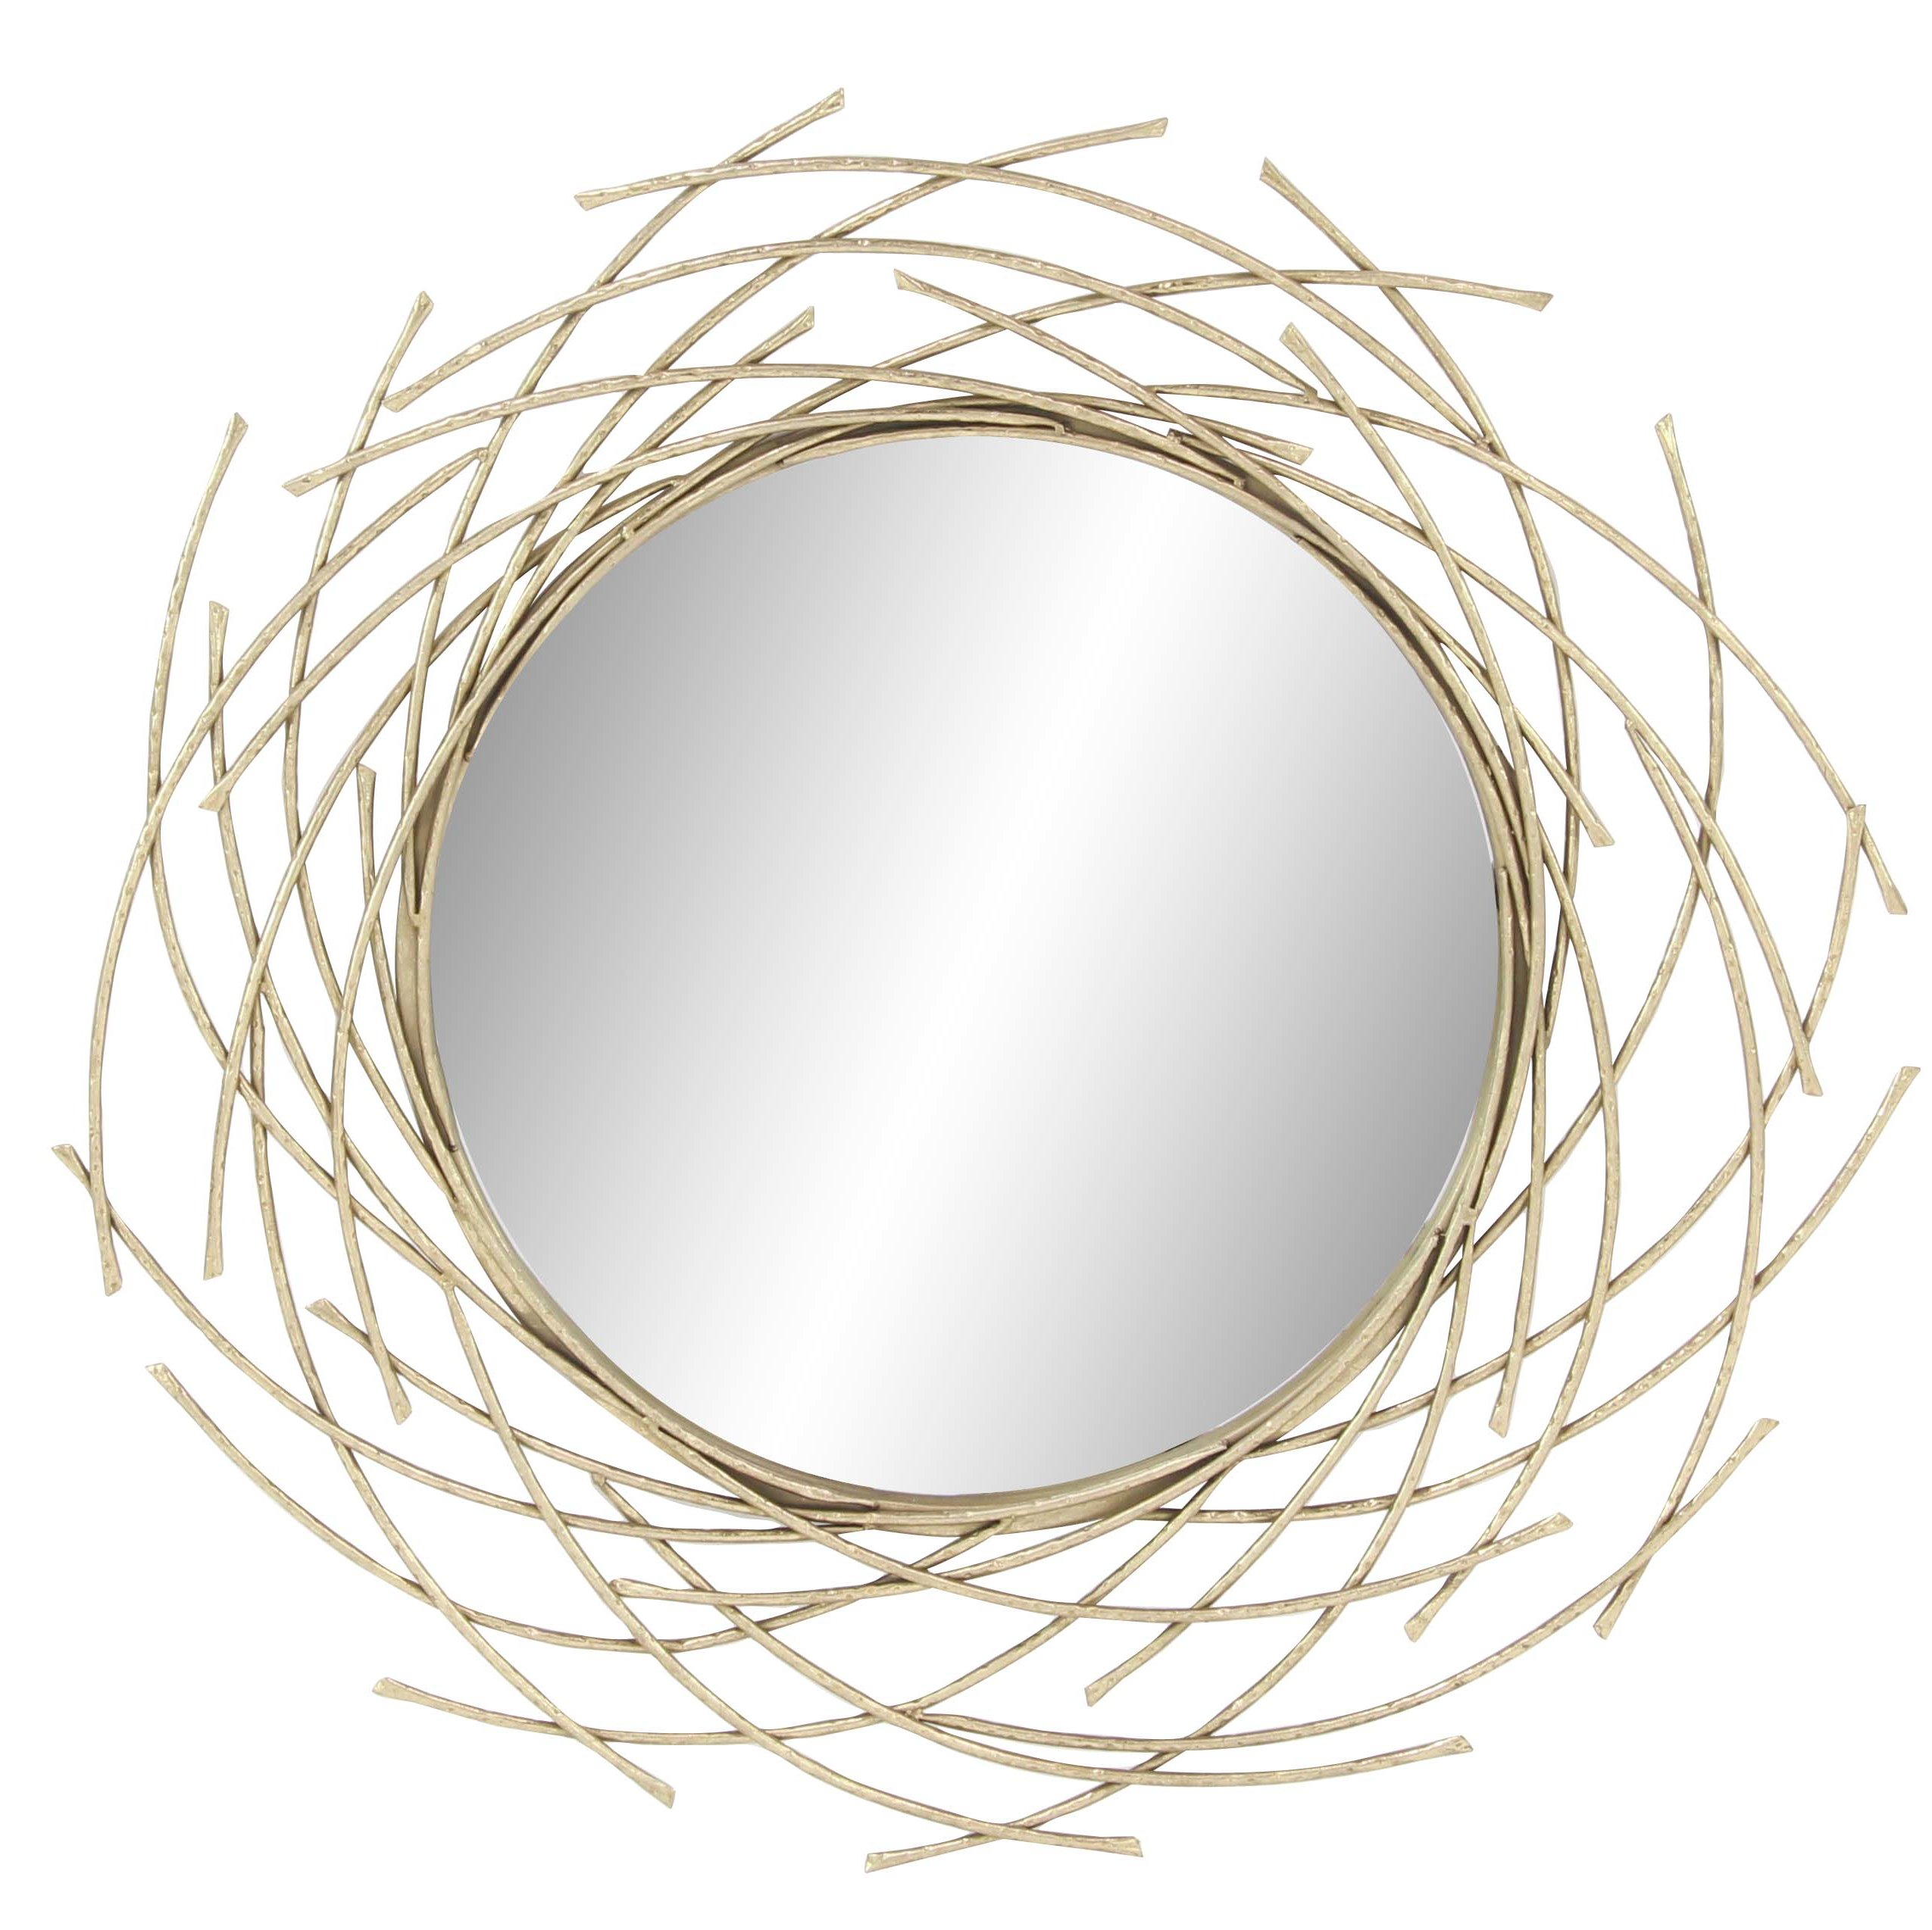 Modern Overlapping Arc Accent Mirror With Newtown Accent Mirrors (Image 9 of 20)